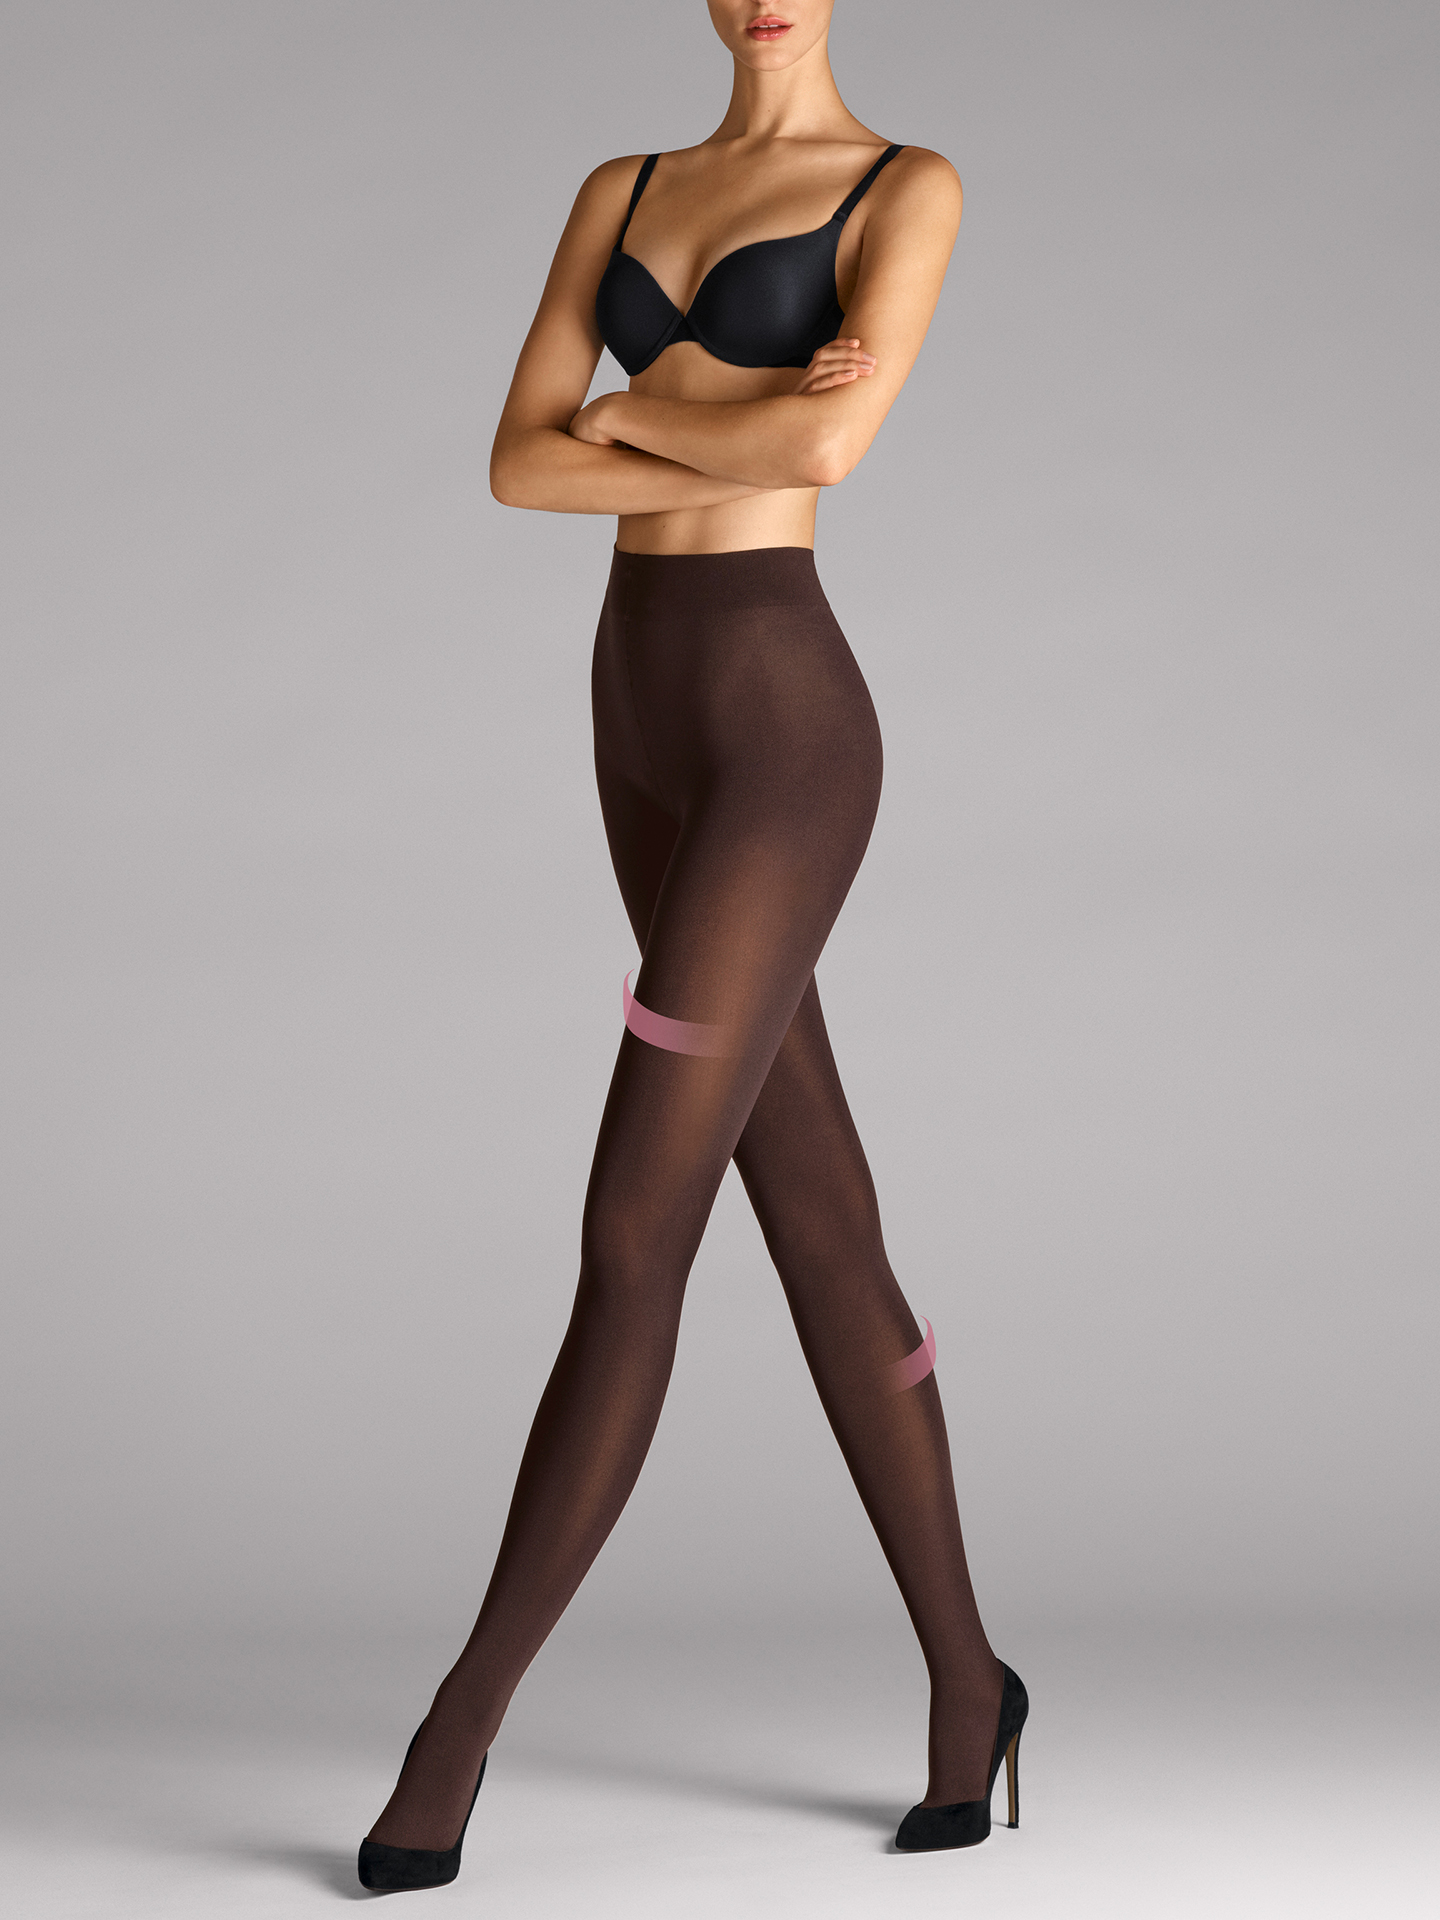 Wolford Apparel & Accessories > Clothing > Collant Velvet 66 leg support Tights - 4250 - S